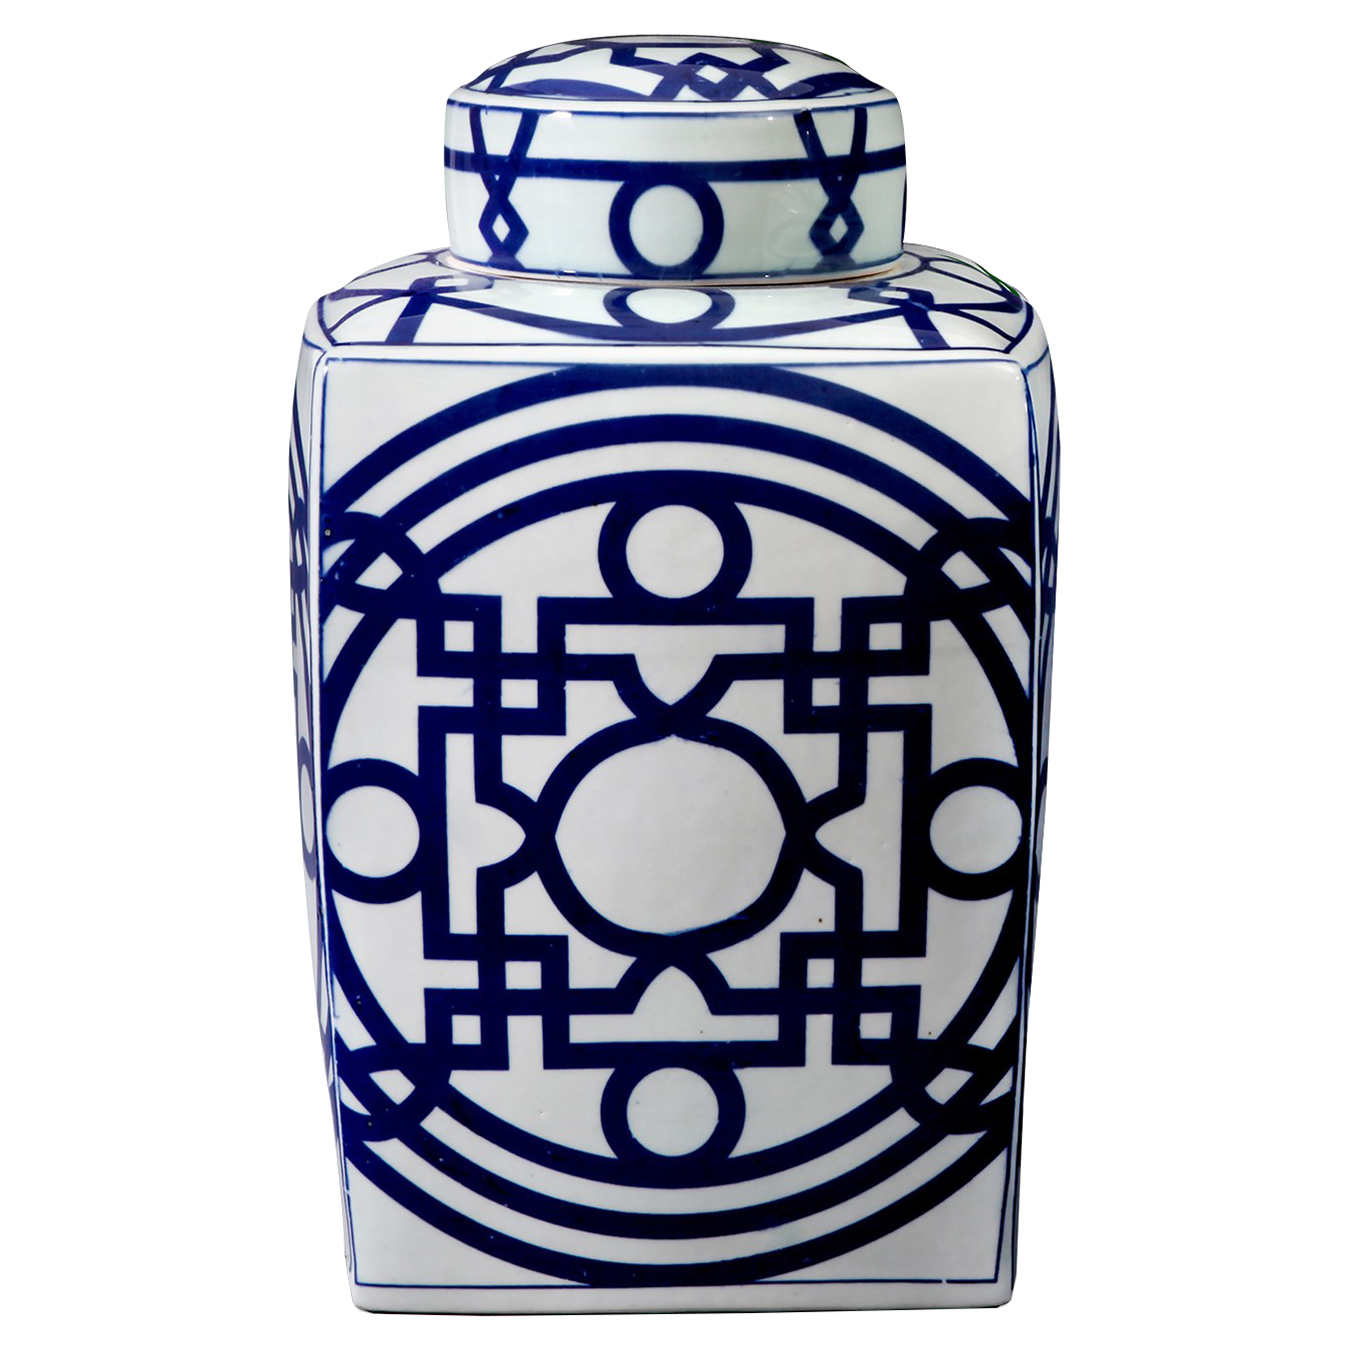 Hai Global Bazaar Blue Chinoiserie Fretwork Square Jar